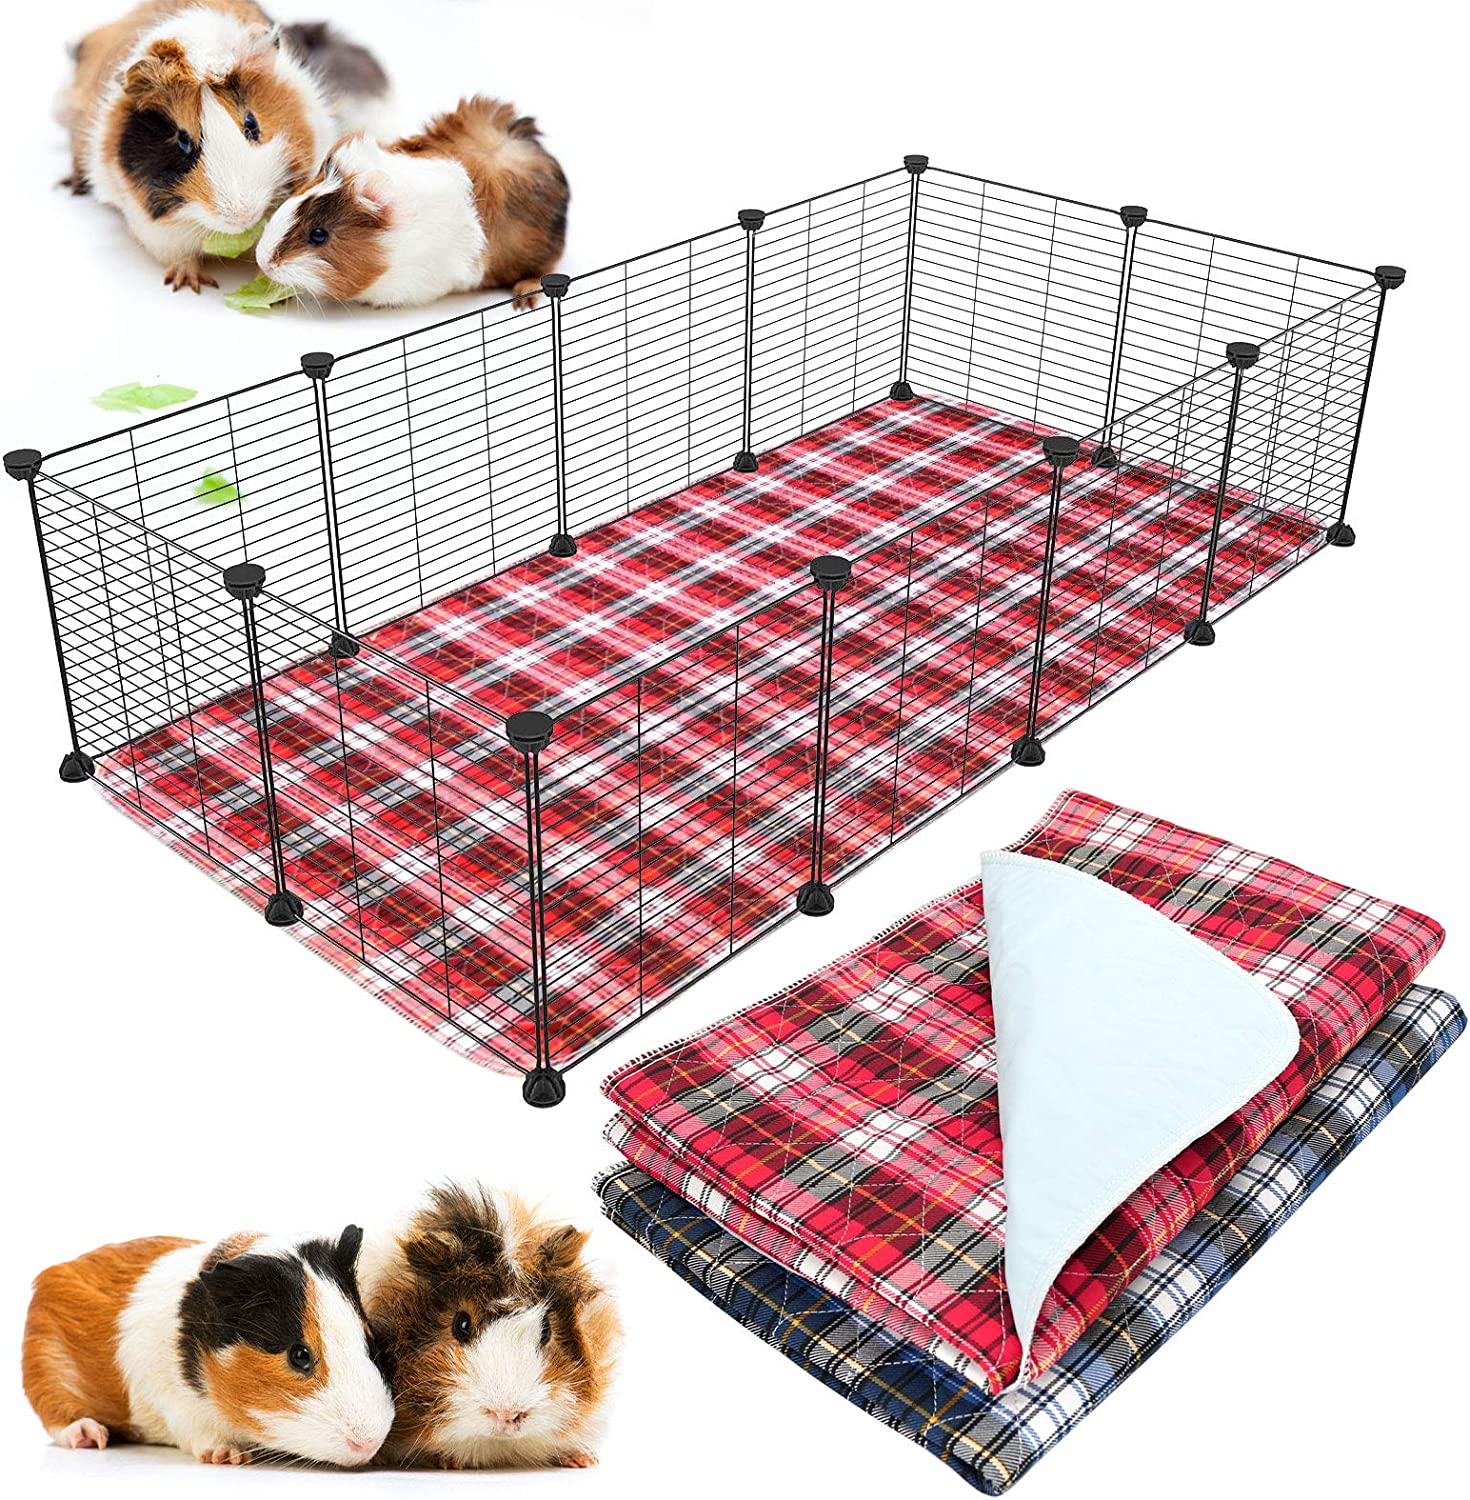 BWOGUE Special price for a limited time 2 Bargain Pack Guinea Pig Cage Washable Bedding Liners